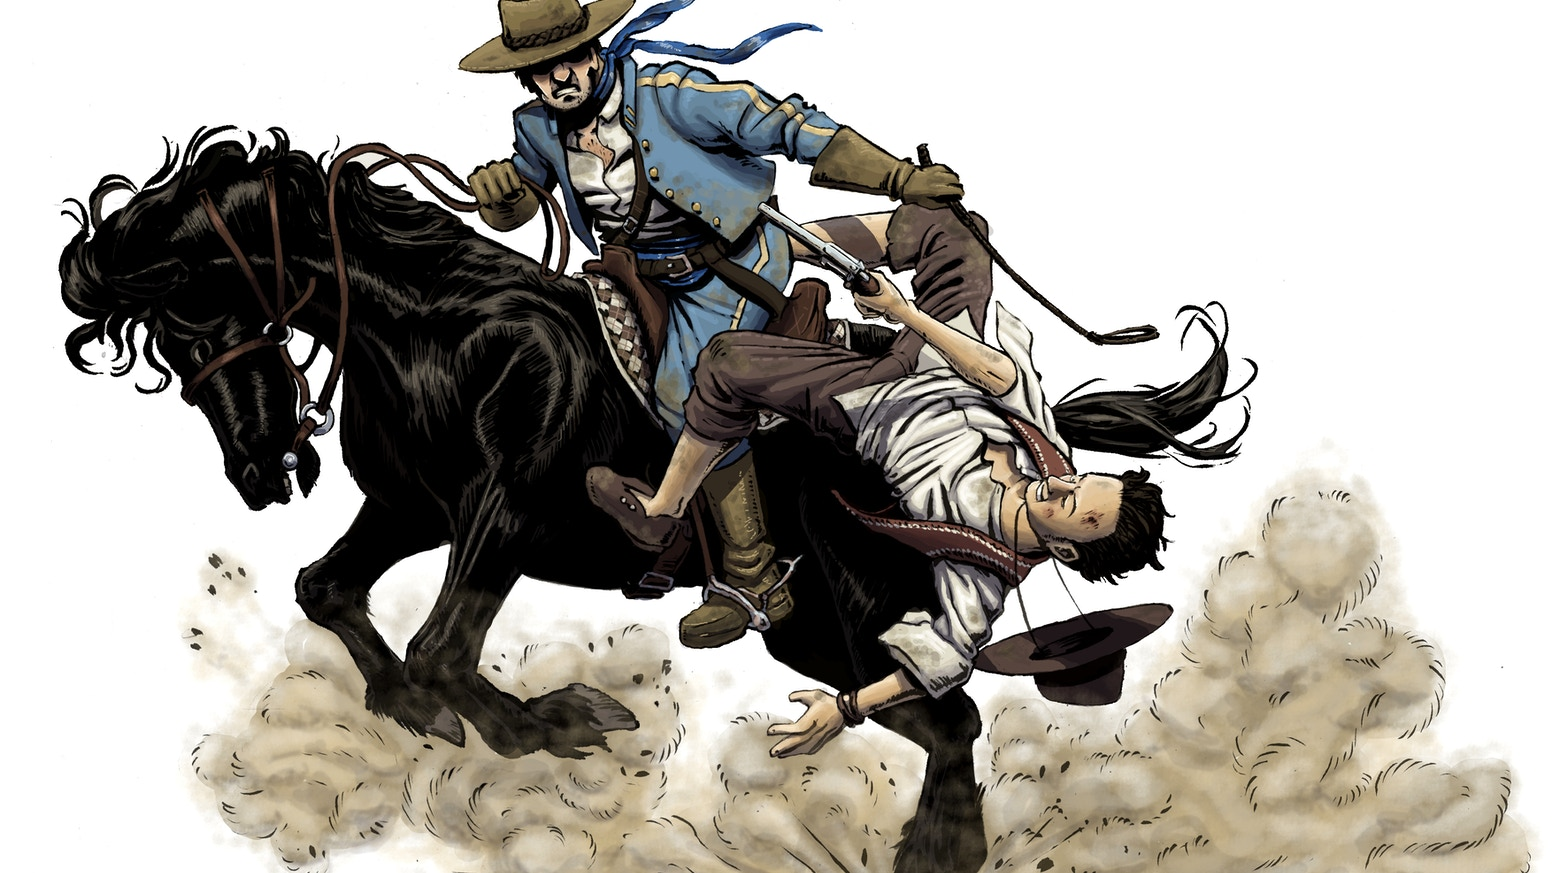 A Rulebook for a Pen and Paper RPG set in a Mythologised Old West setting, with heavy emphasis on player individuality and engagement.